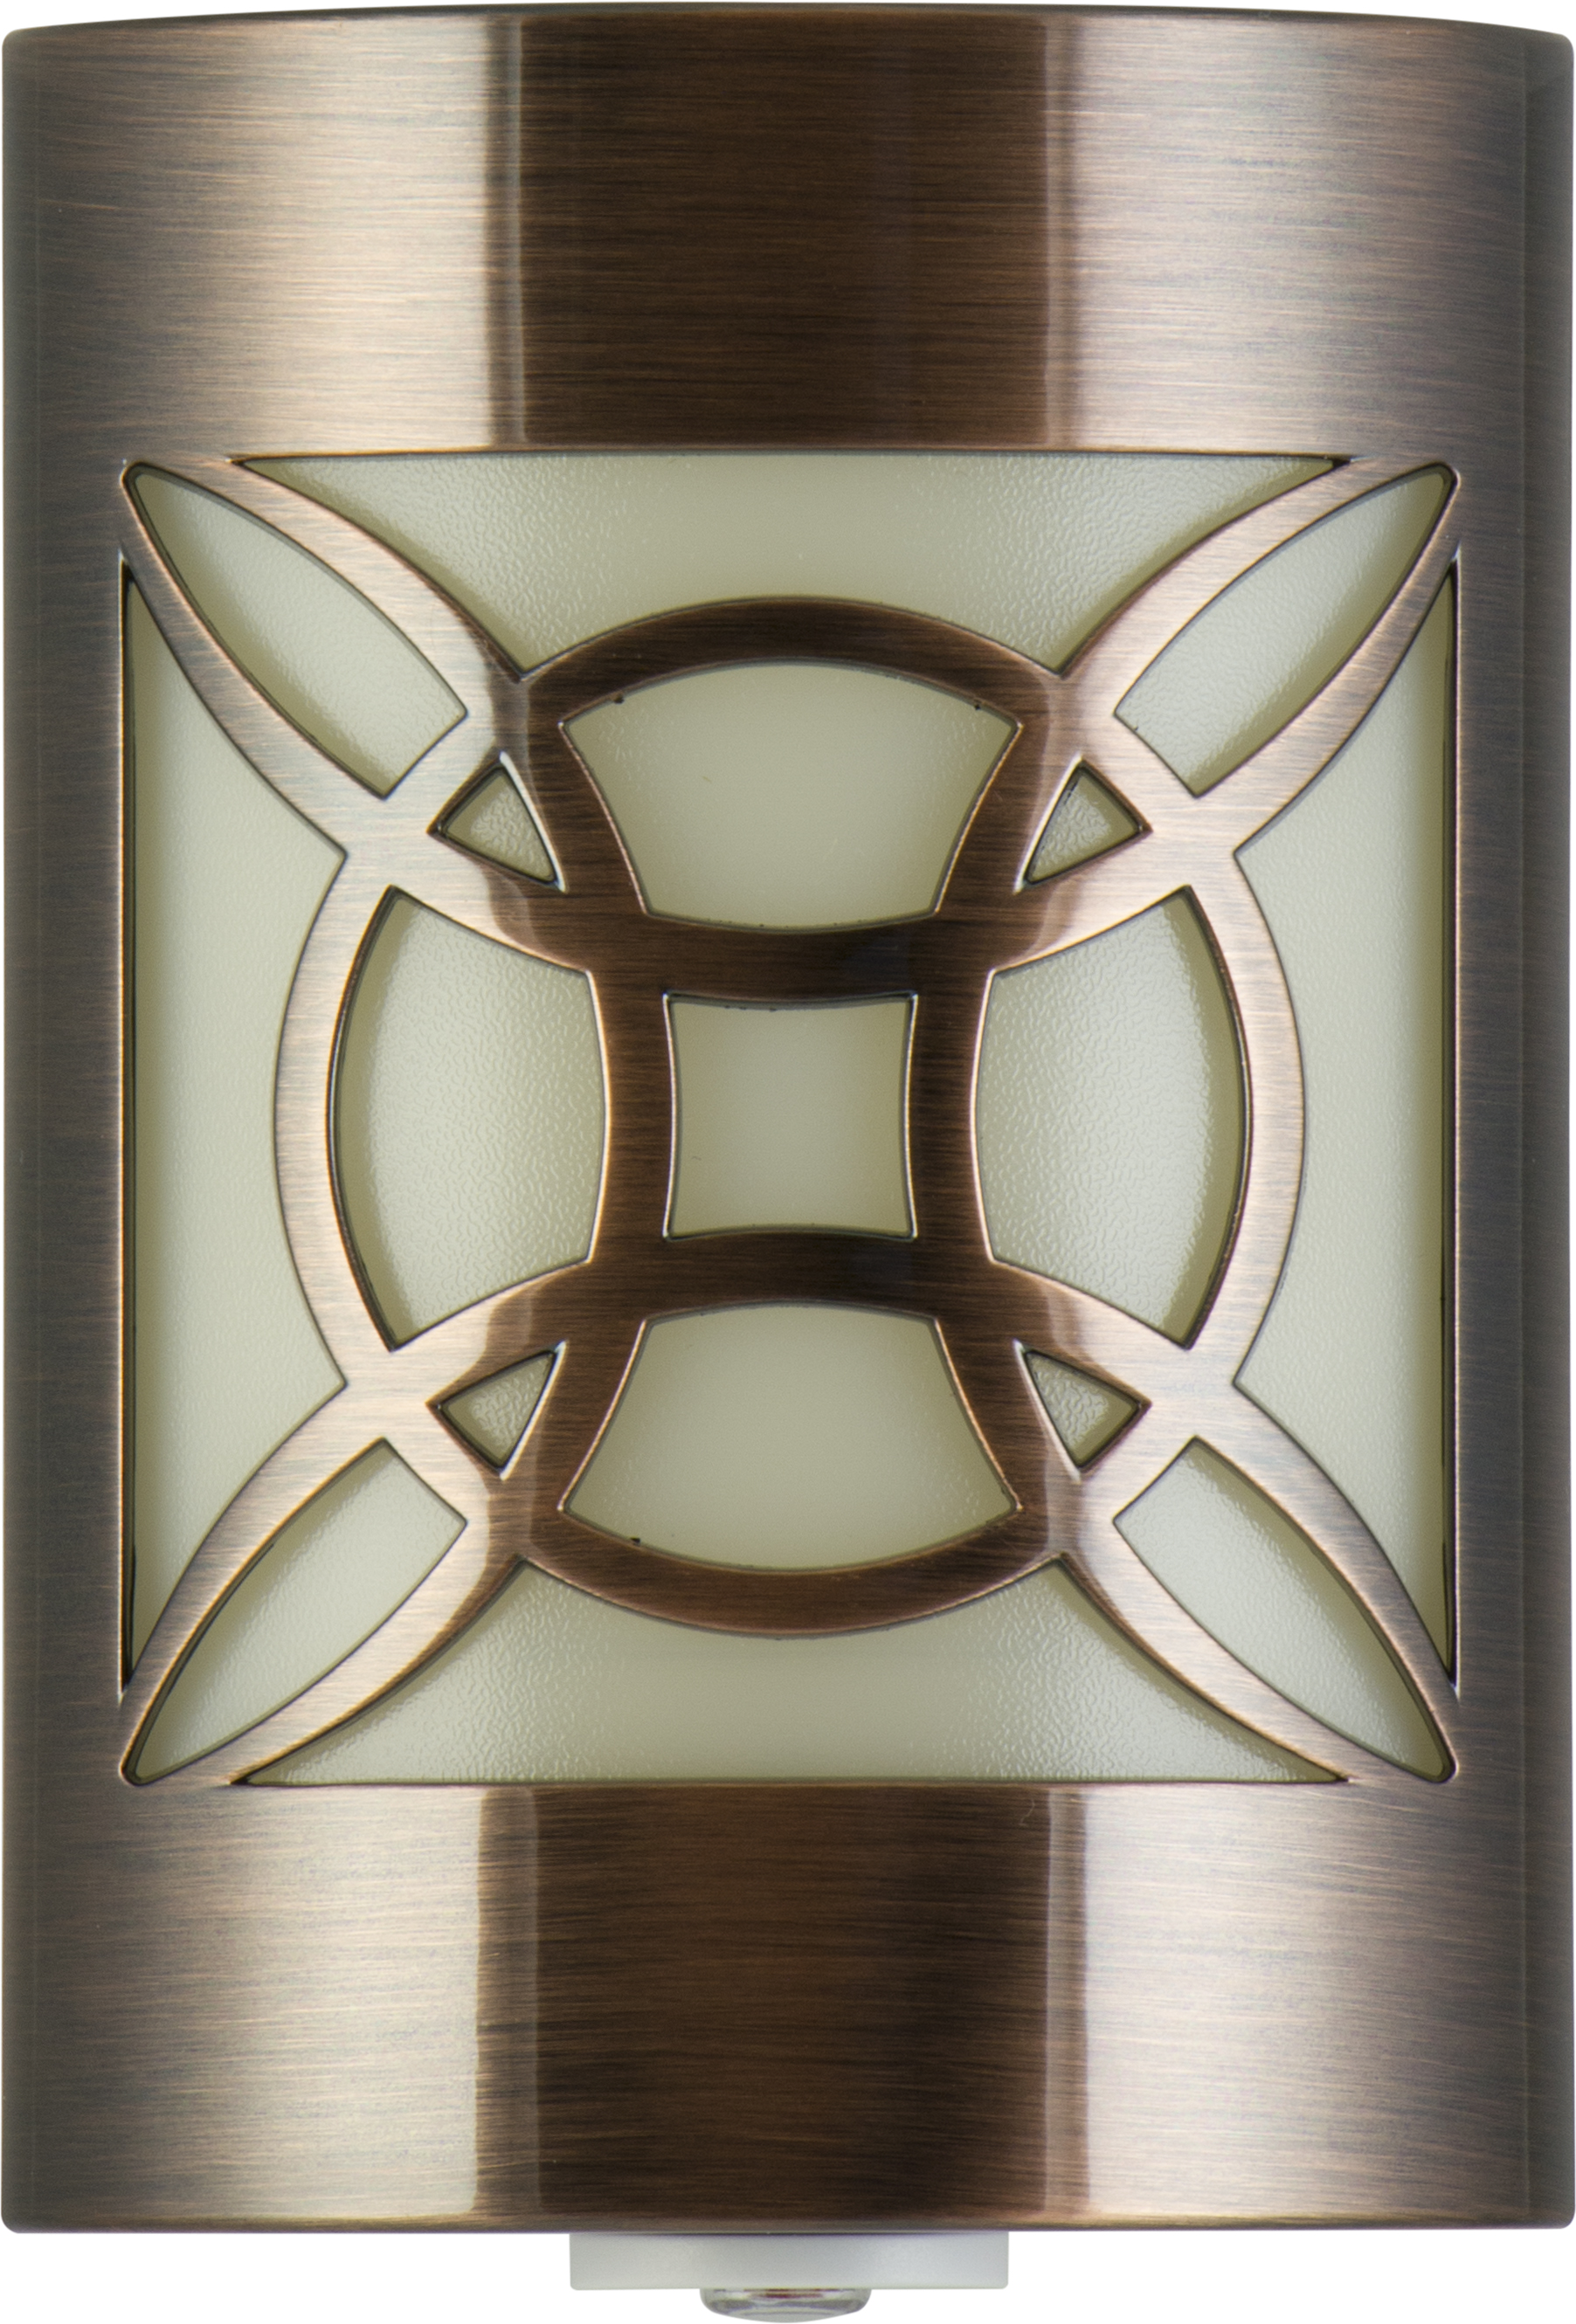 GE LED Decorative Night Light, Geometric, Oil Rubbed Bronze, 11332 by Jasco Products Company, LLC